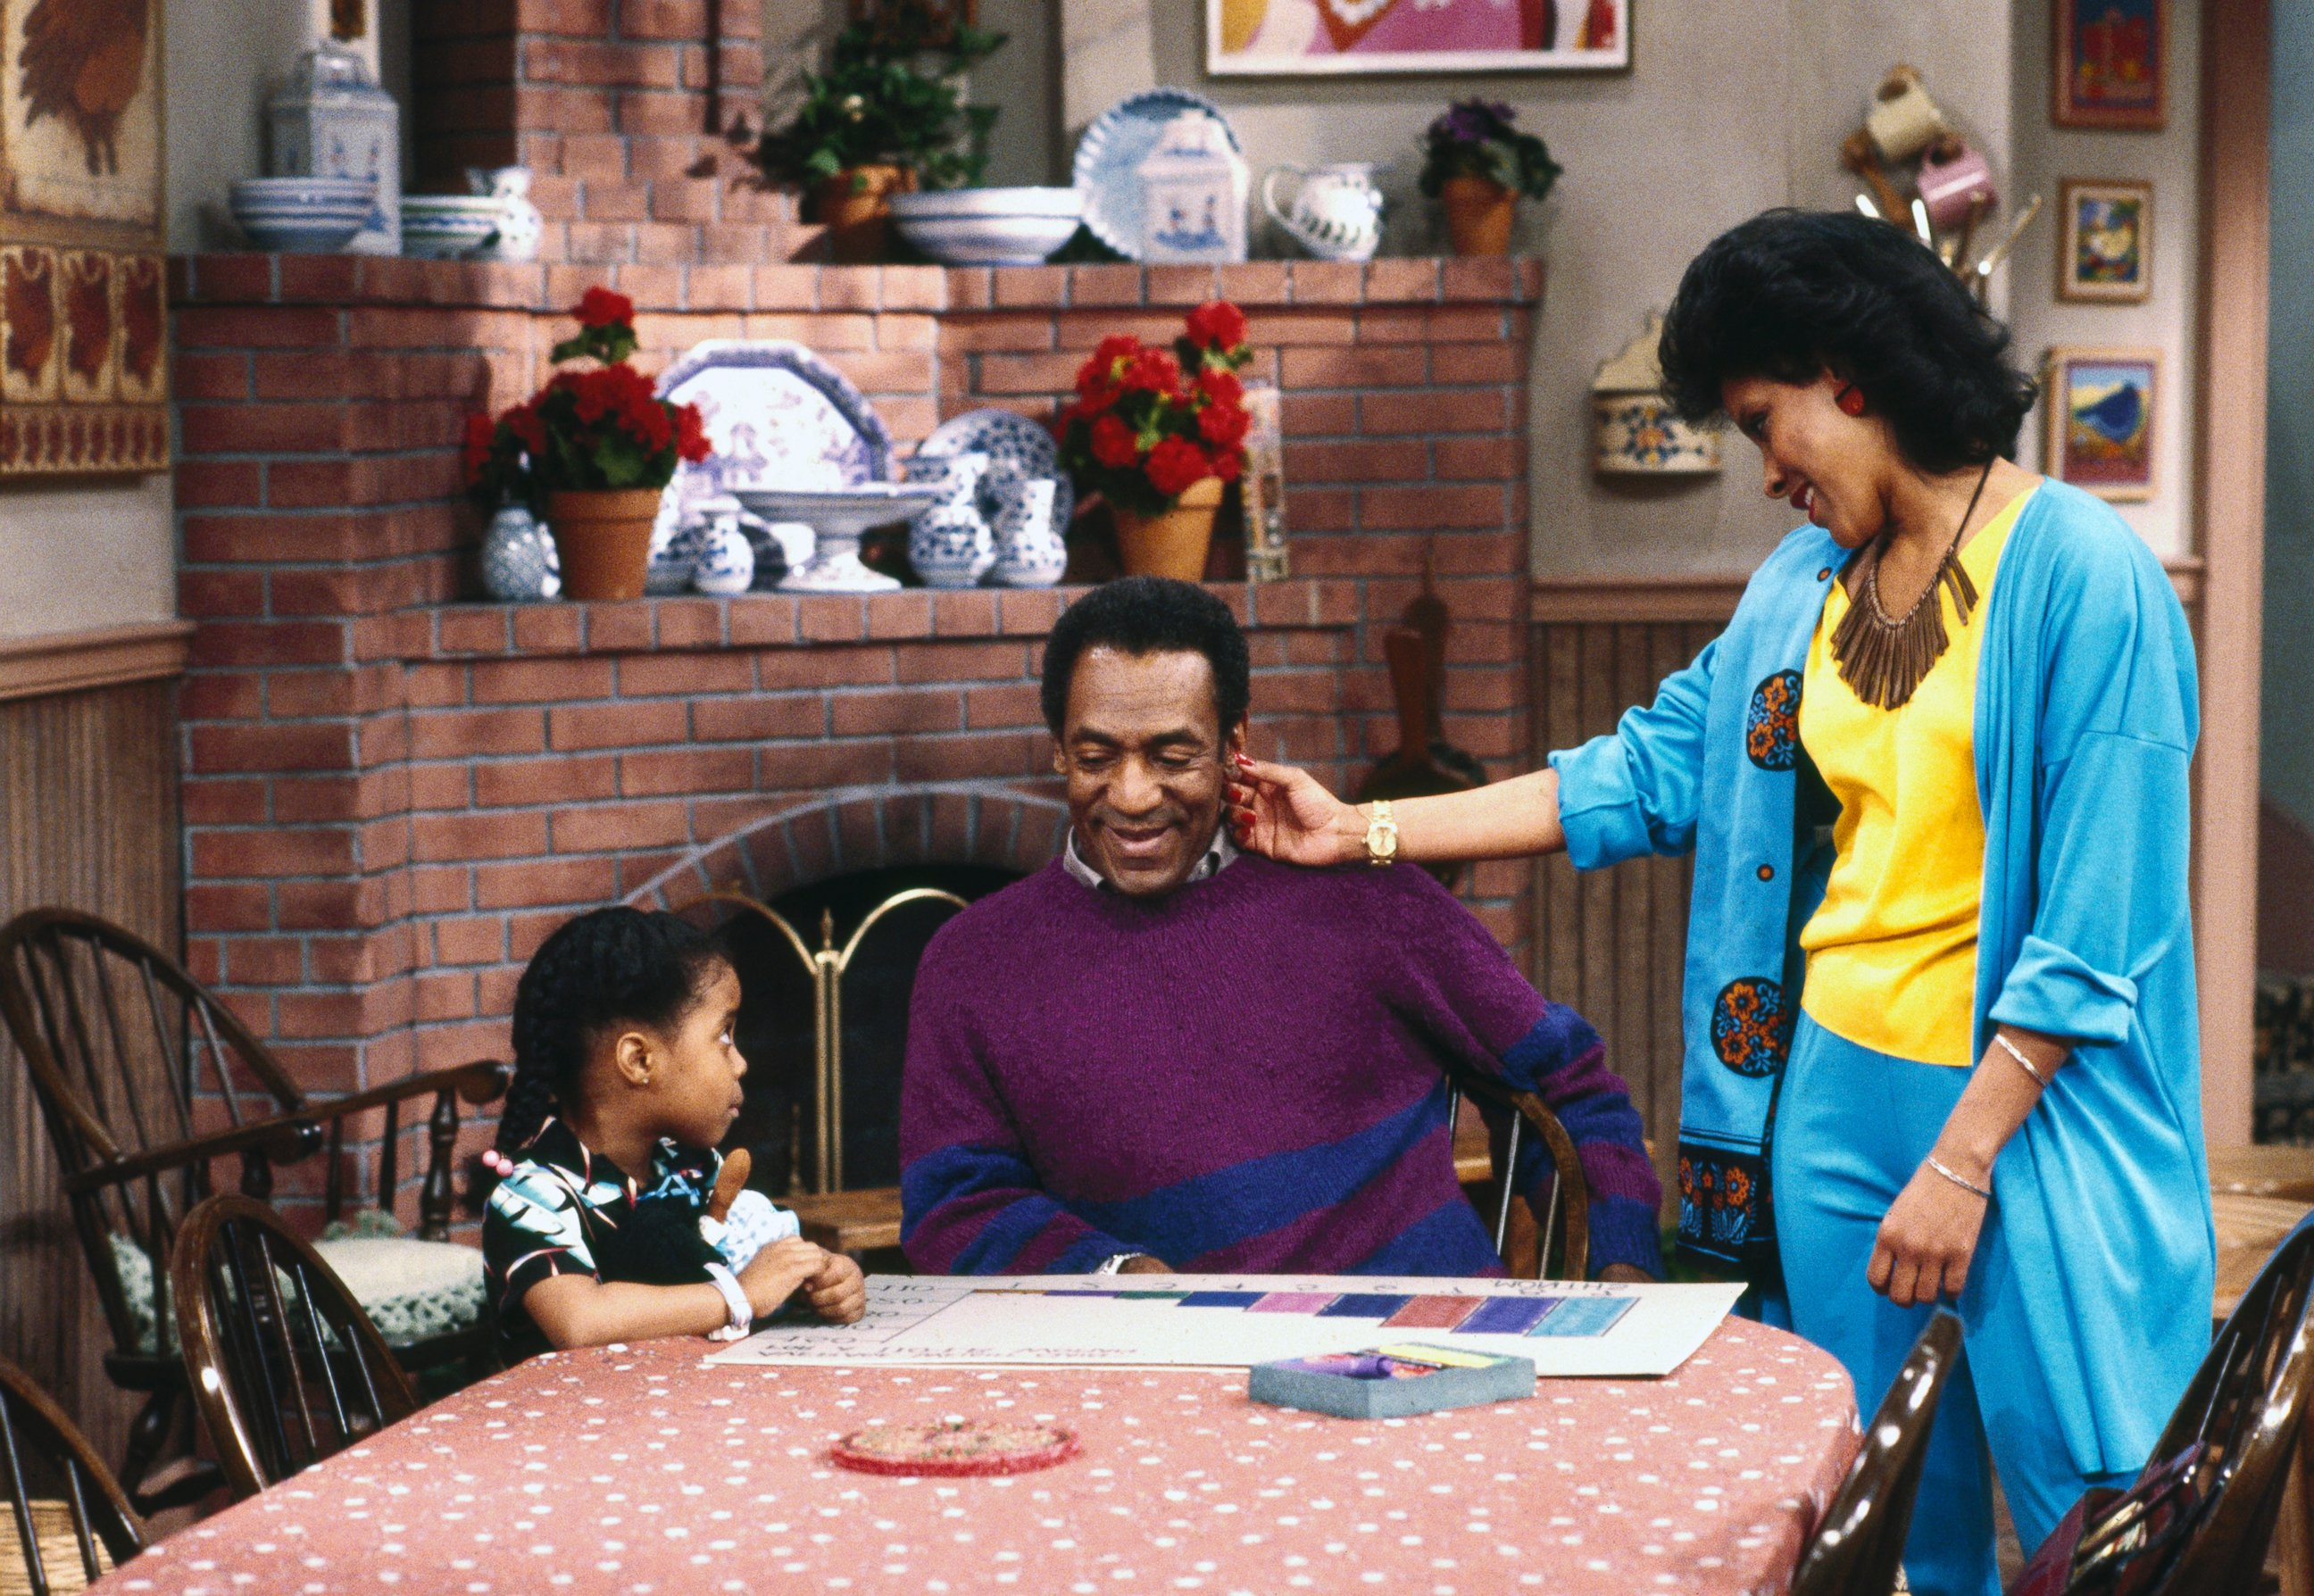 Rudy from cosby show xxx - Rudy huxtable cosby show porn phylicia rashad  videos at abc